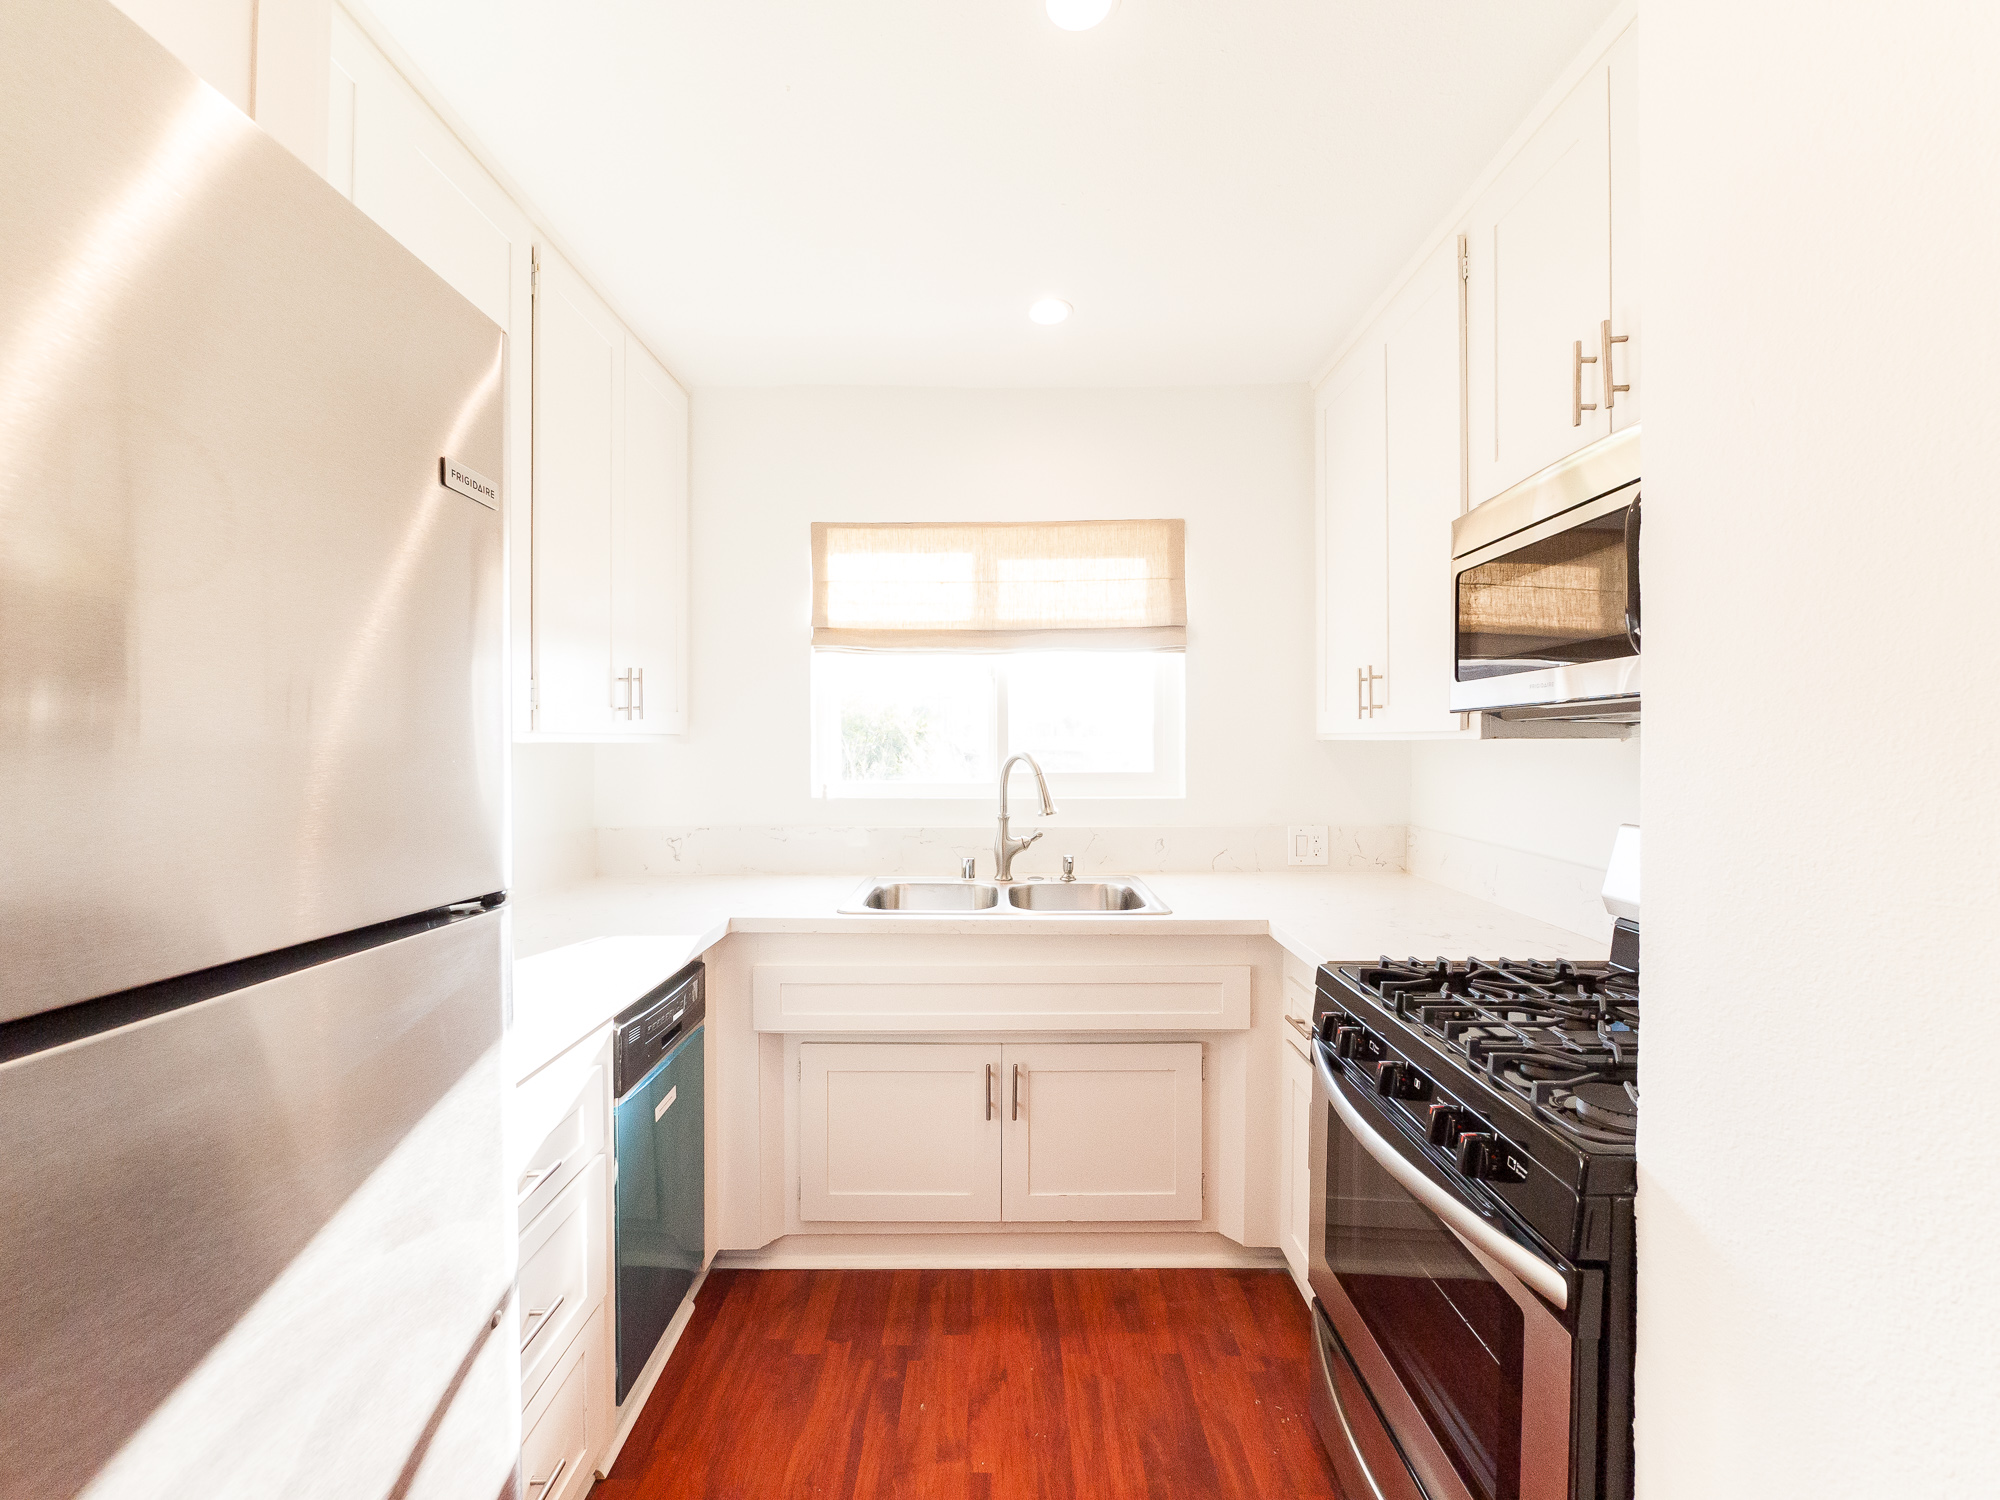 Just Renovated, Sleek Mid-Century 1 Bed  -Open Style Kitchen -DW-AC- Parking-Great Location!